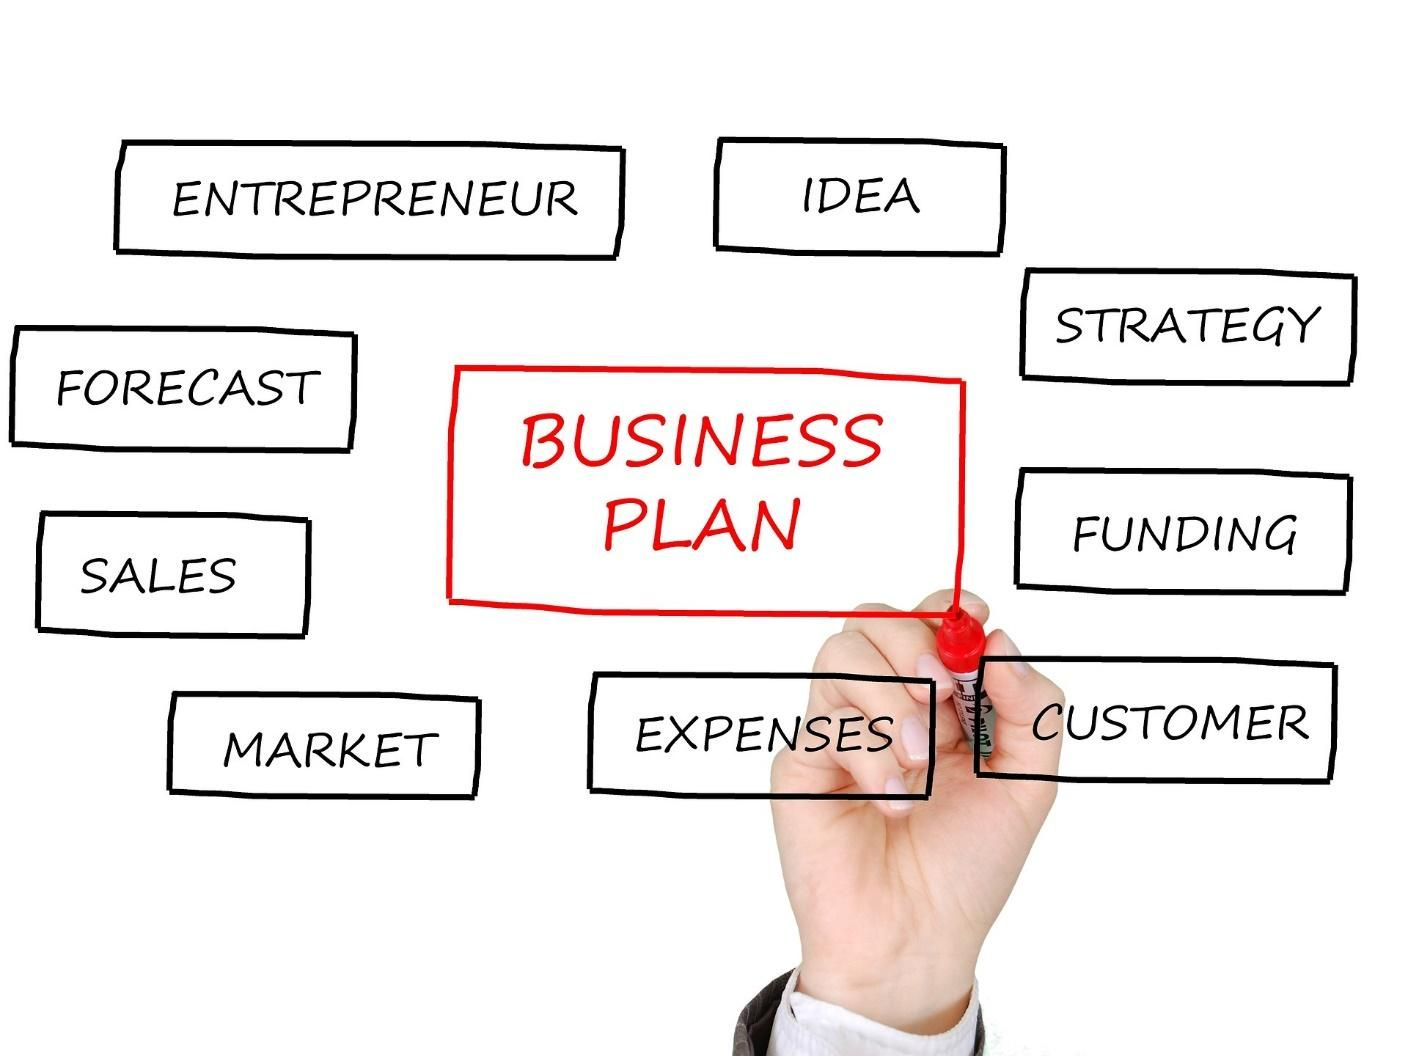 hand draws business plan map